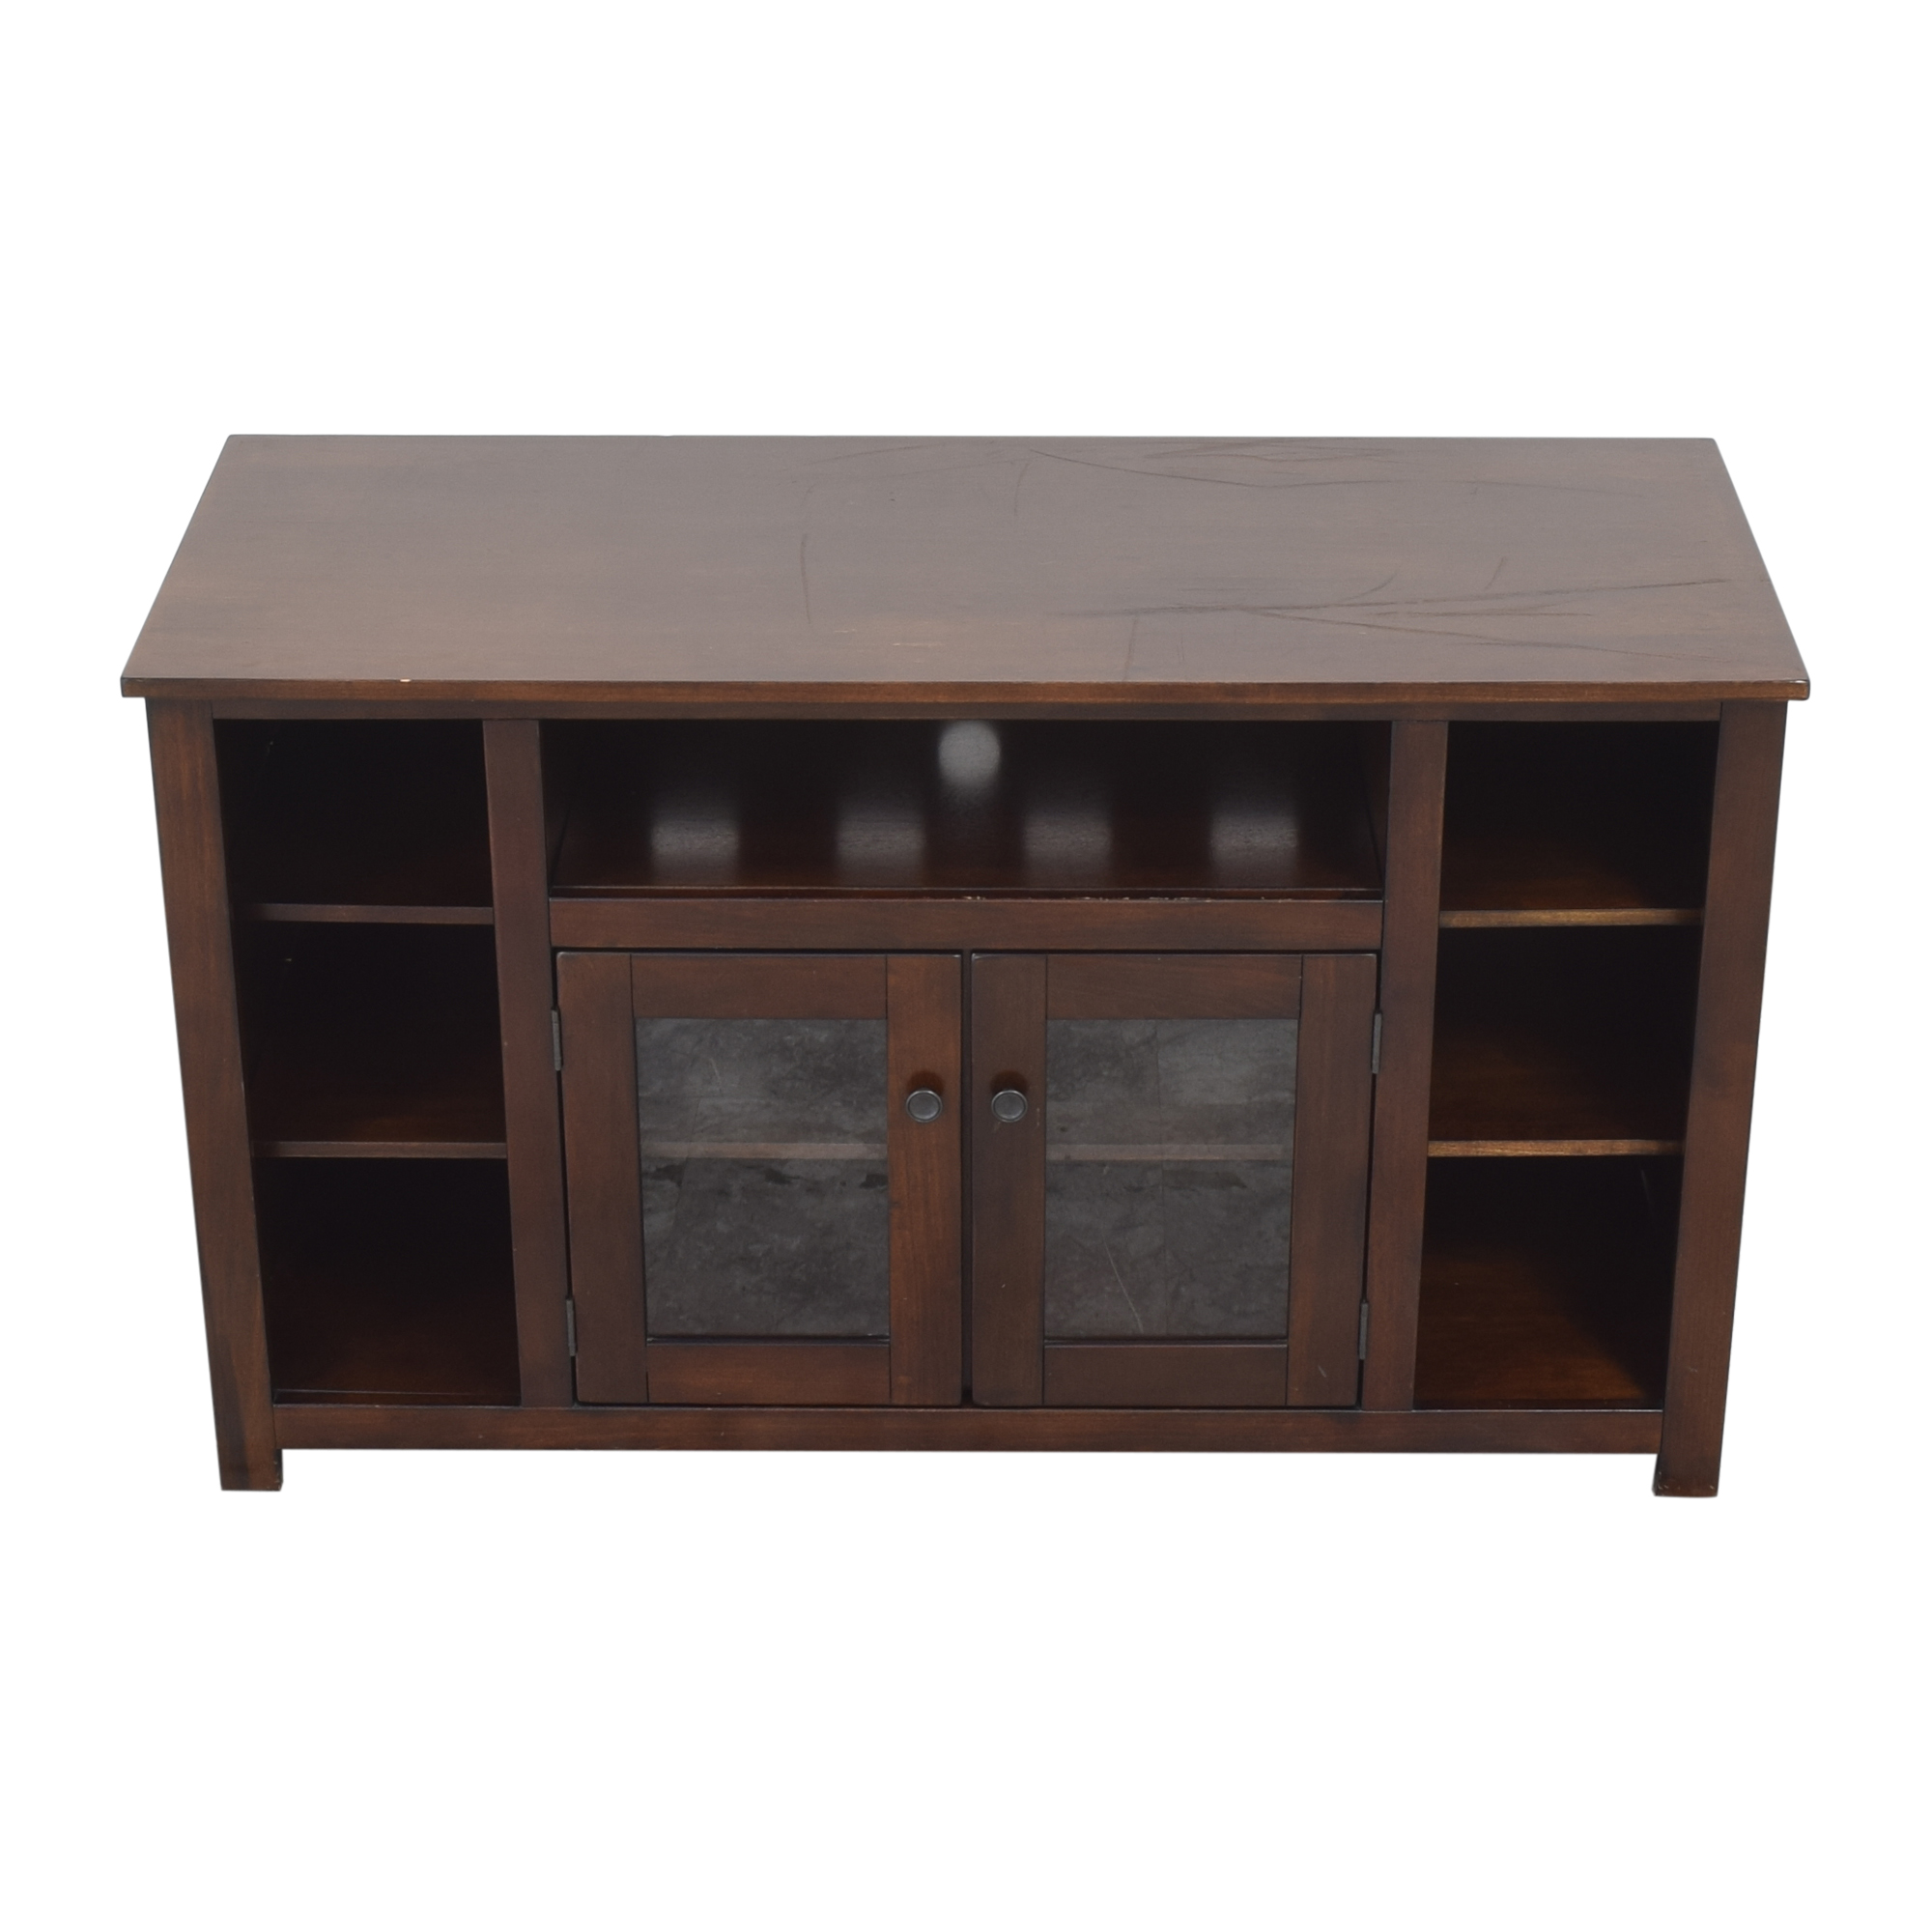 Ashley Furniture Ashley Furniture Signature Design Media Console used